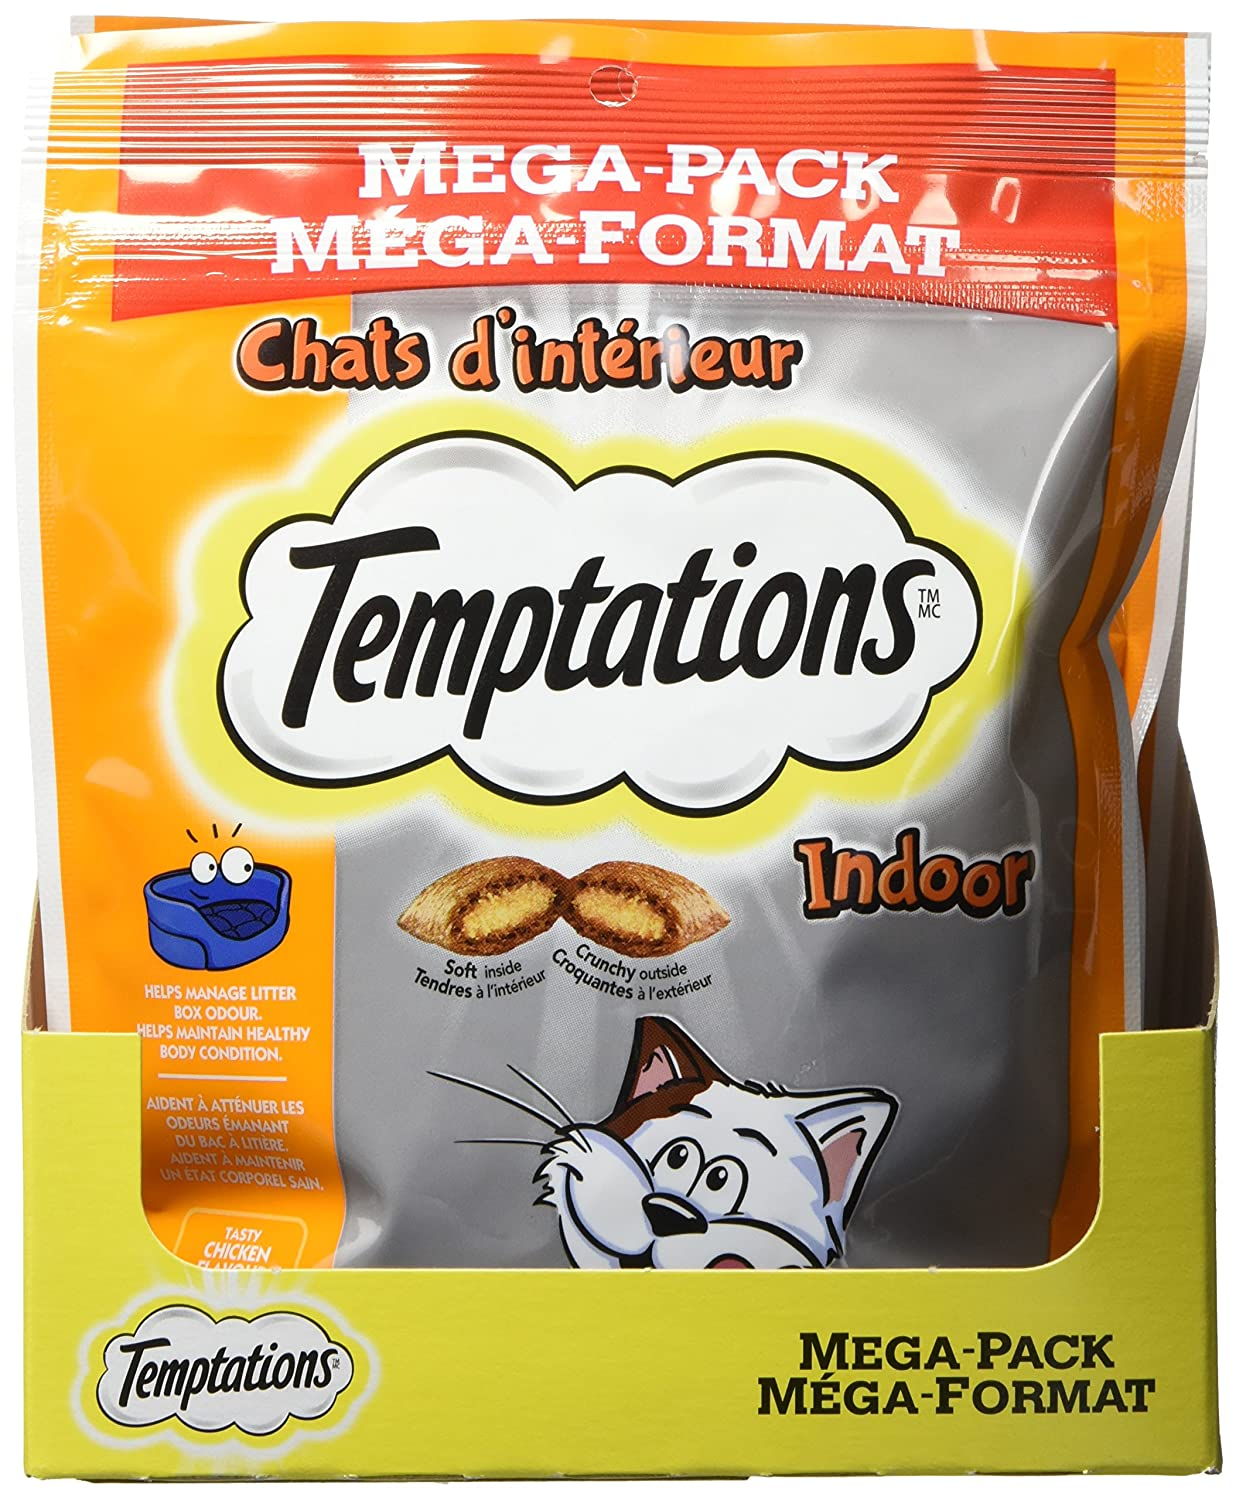 Temptations Treats for Cats 0 58496 42955 3